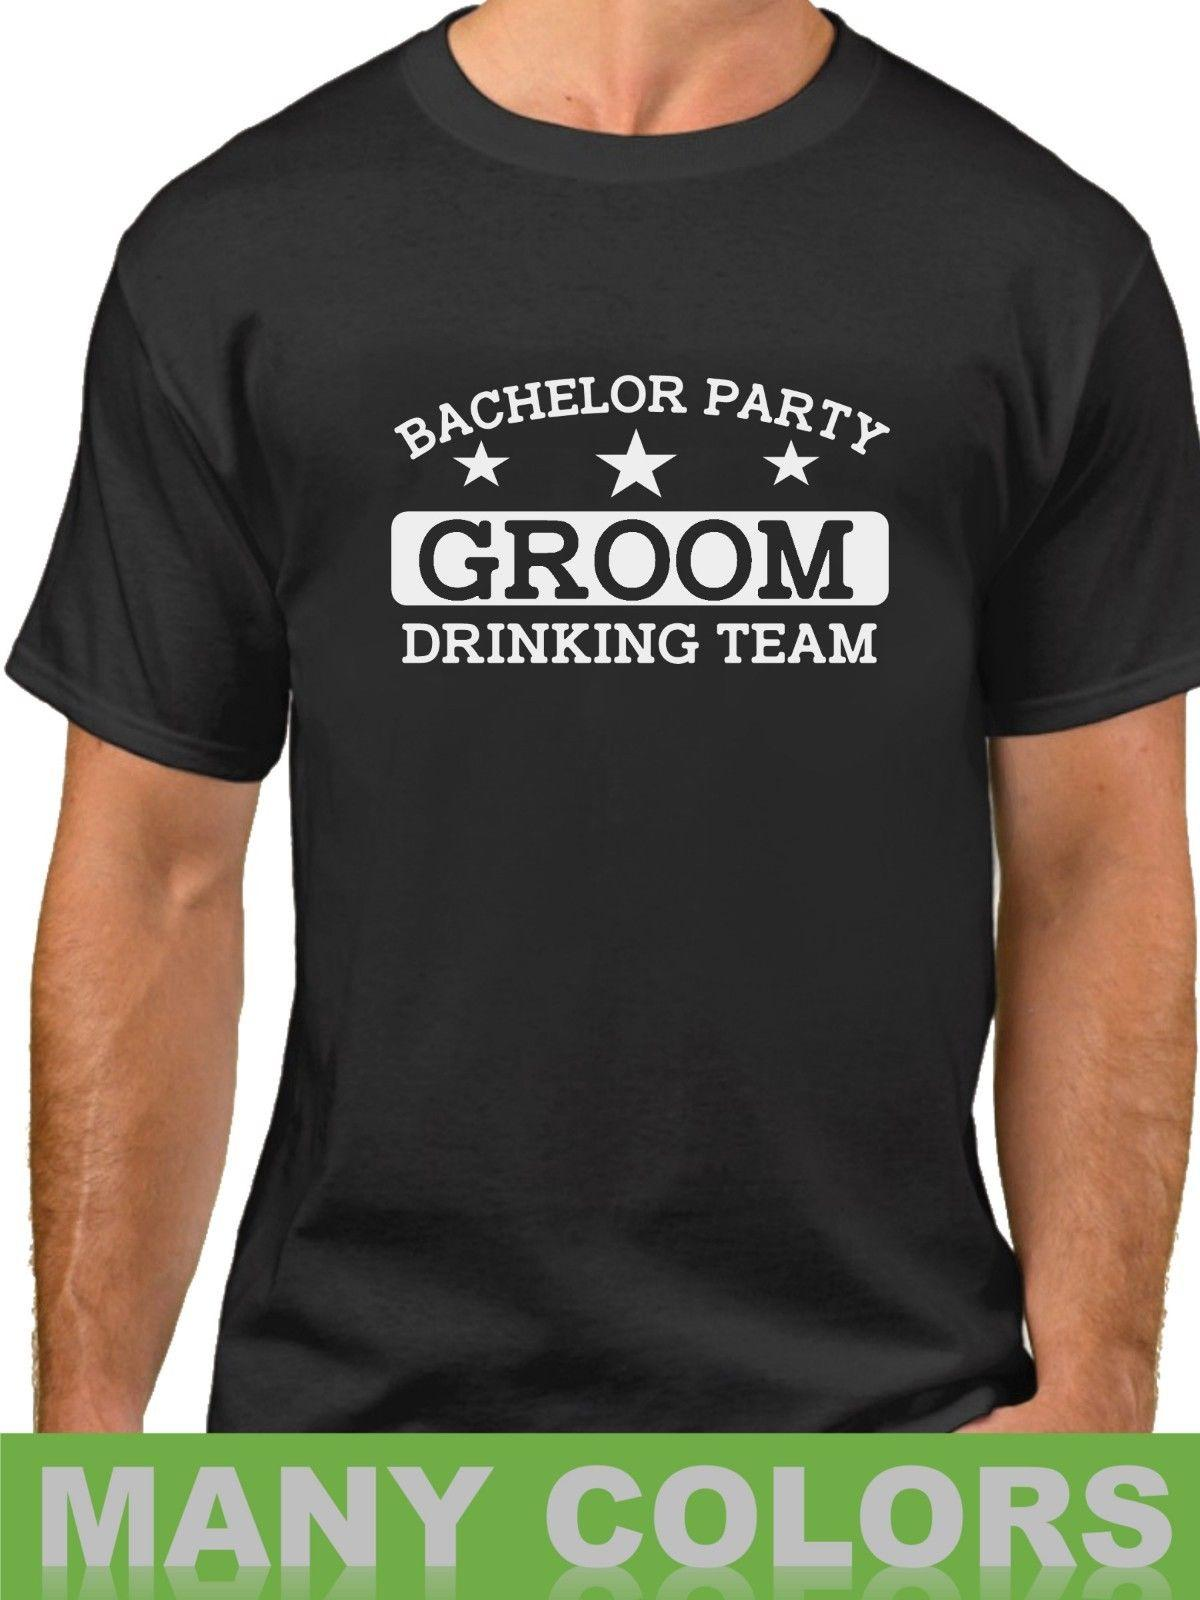 3ee7158a Bachelor Party Groom Drinking Team Shirt Funny T Shirt Groom'S Brew Crew  TeeFunny Unisex Casual Tee Gift Ringer T Shirts Political T Shirts From ...